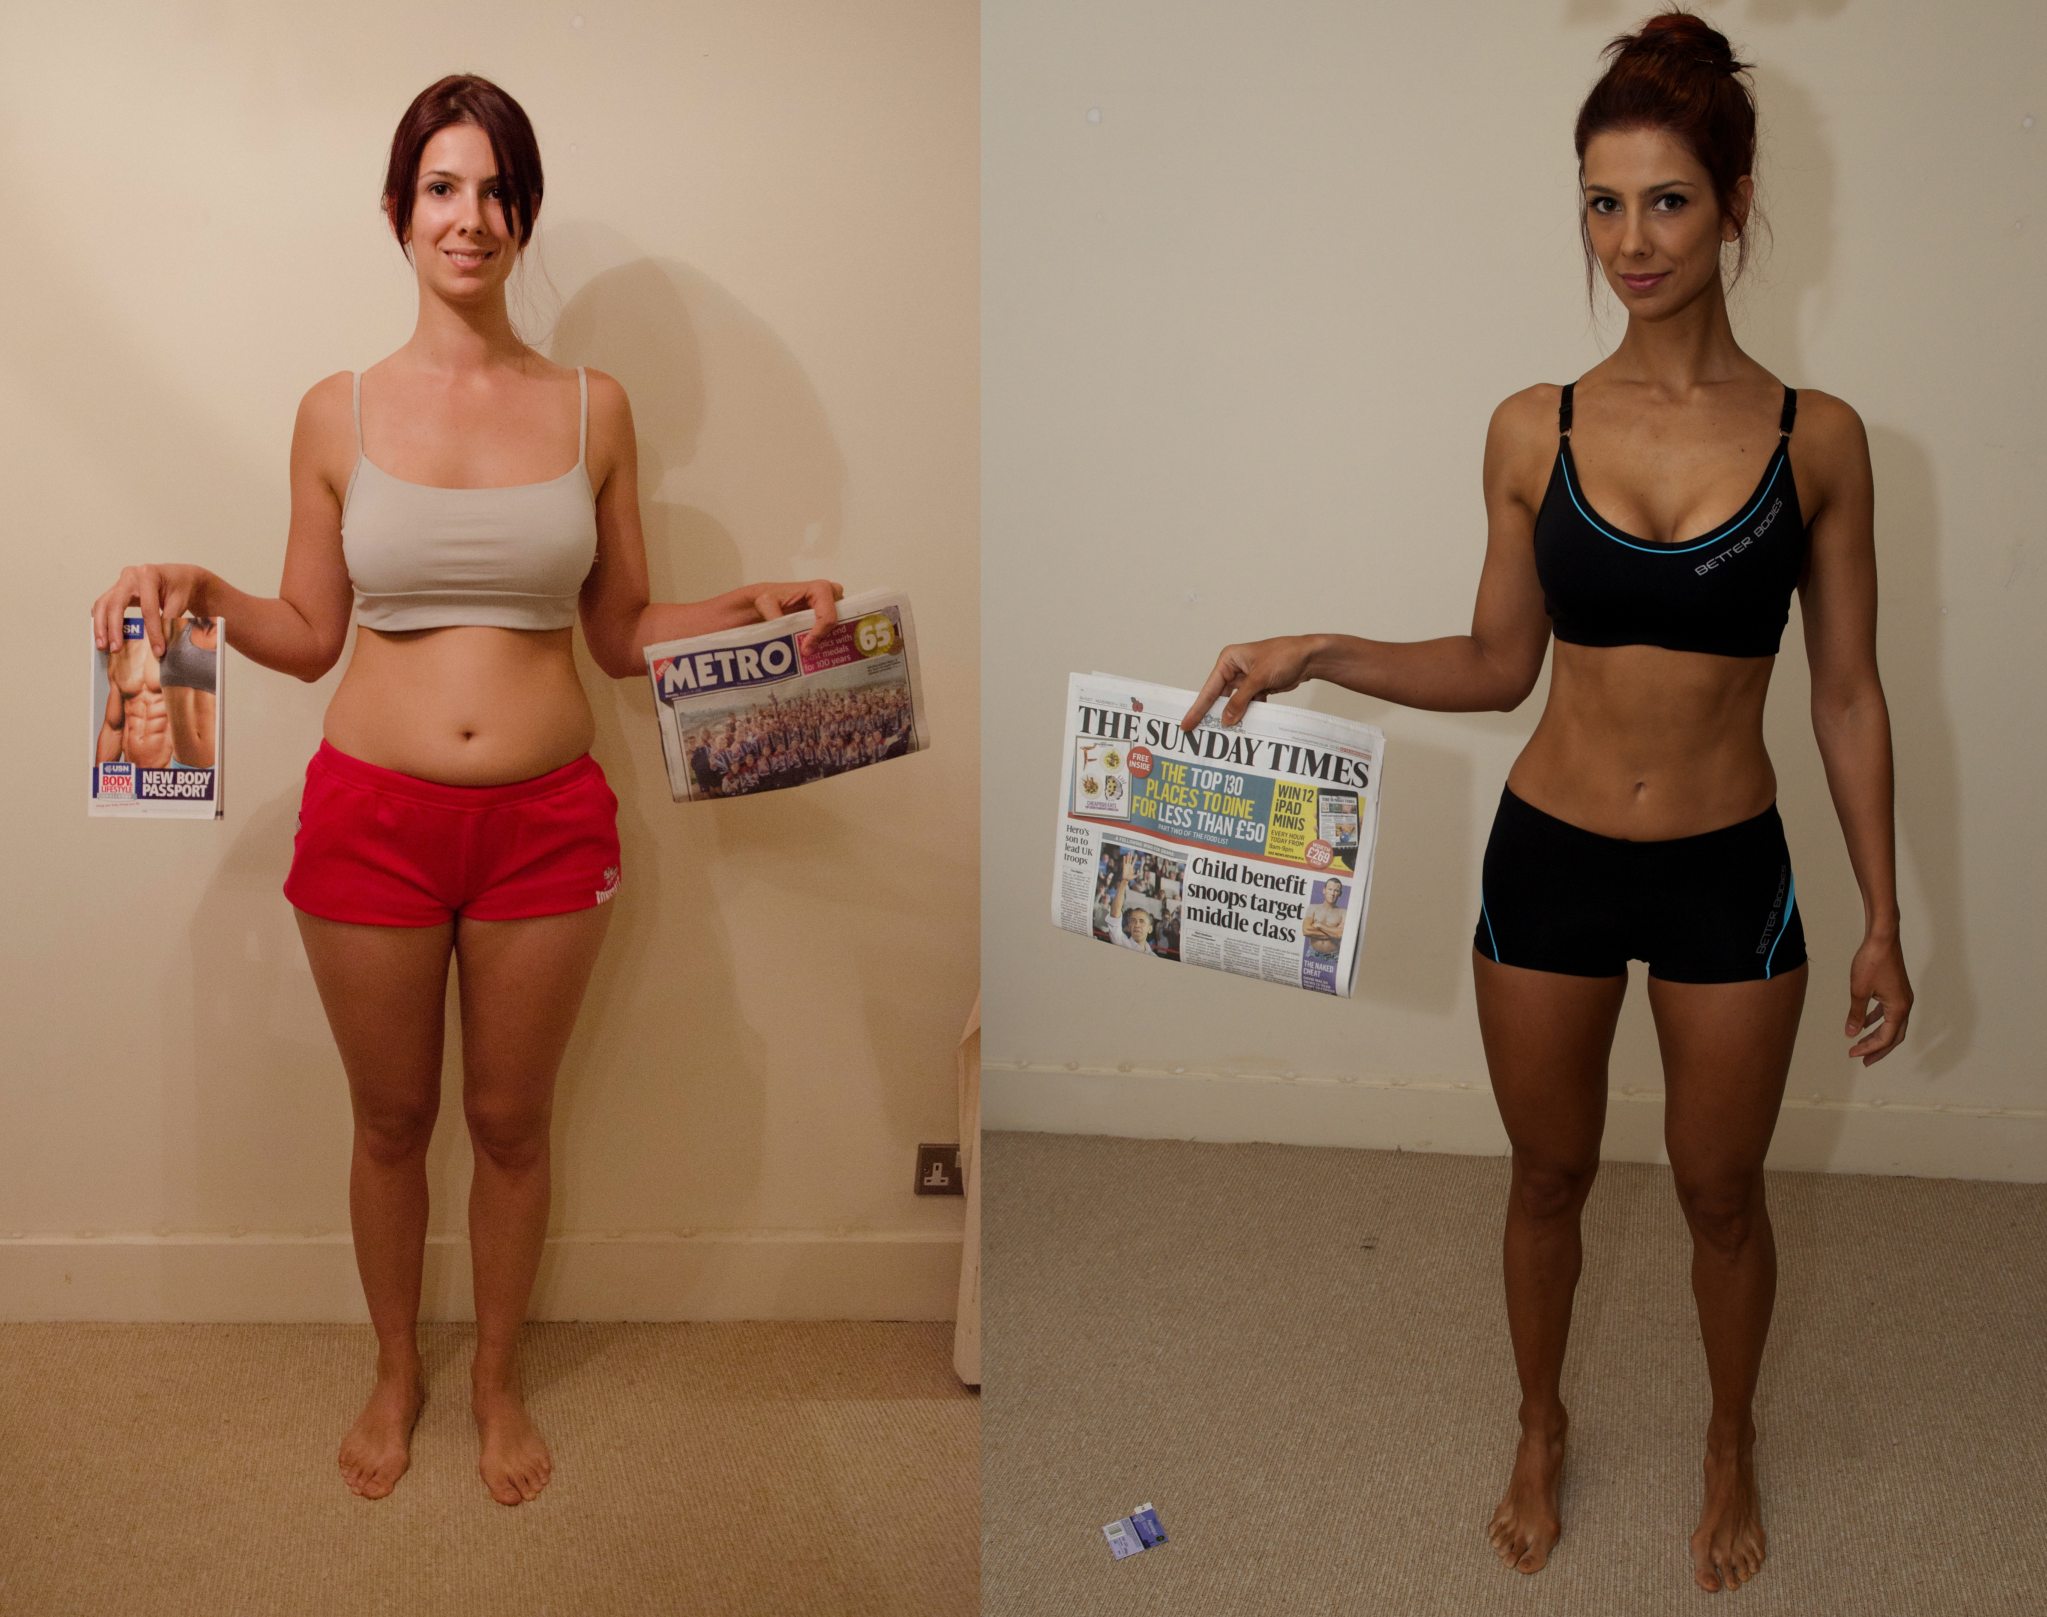 Accountant, Juliana, felt depressed about her weight. Now she is a professional WBFF athlete and competing in bikini competitions.